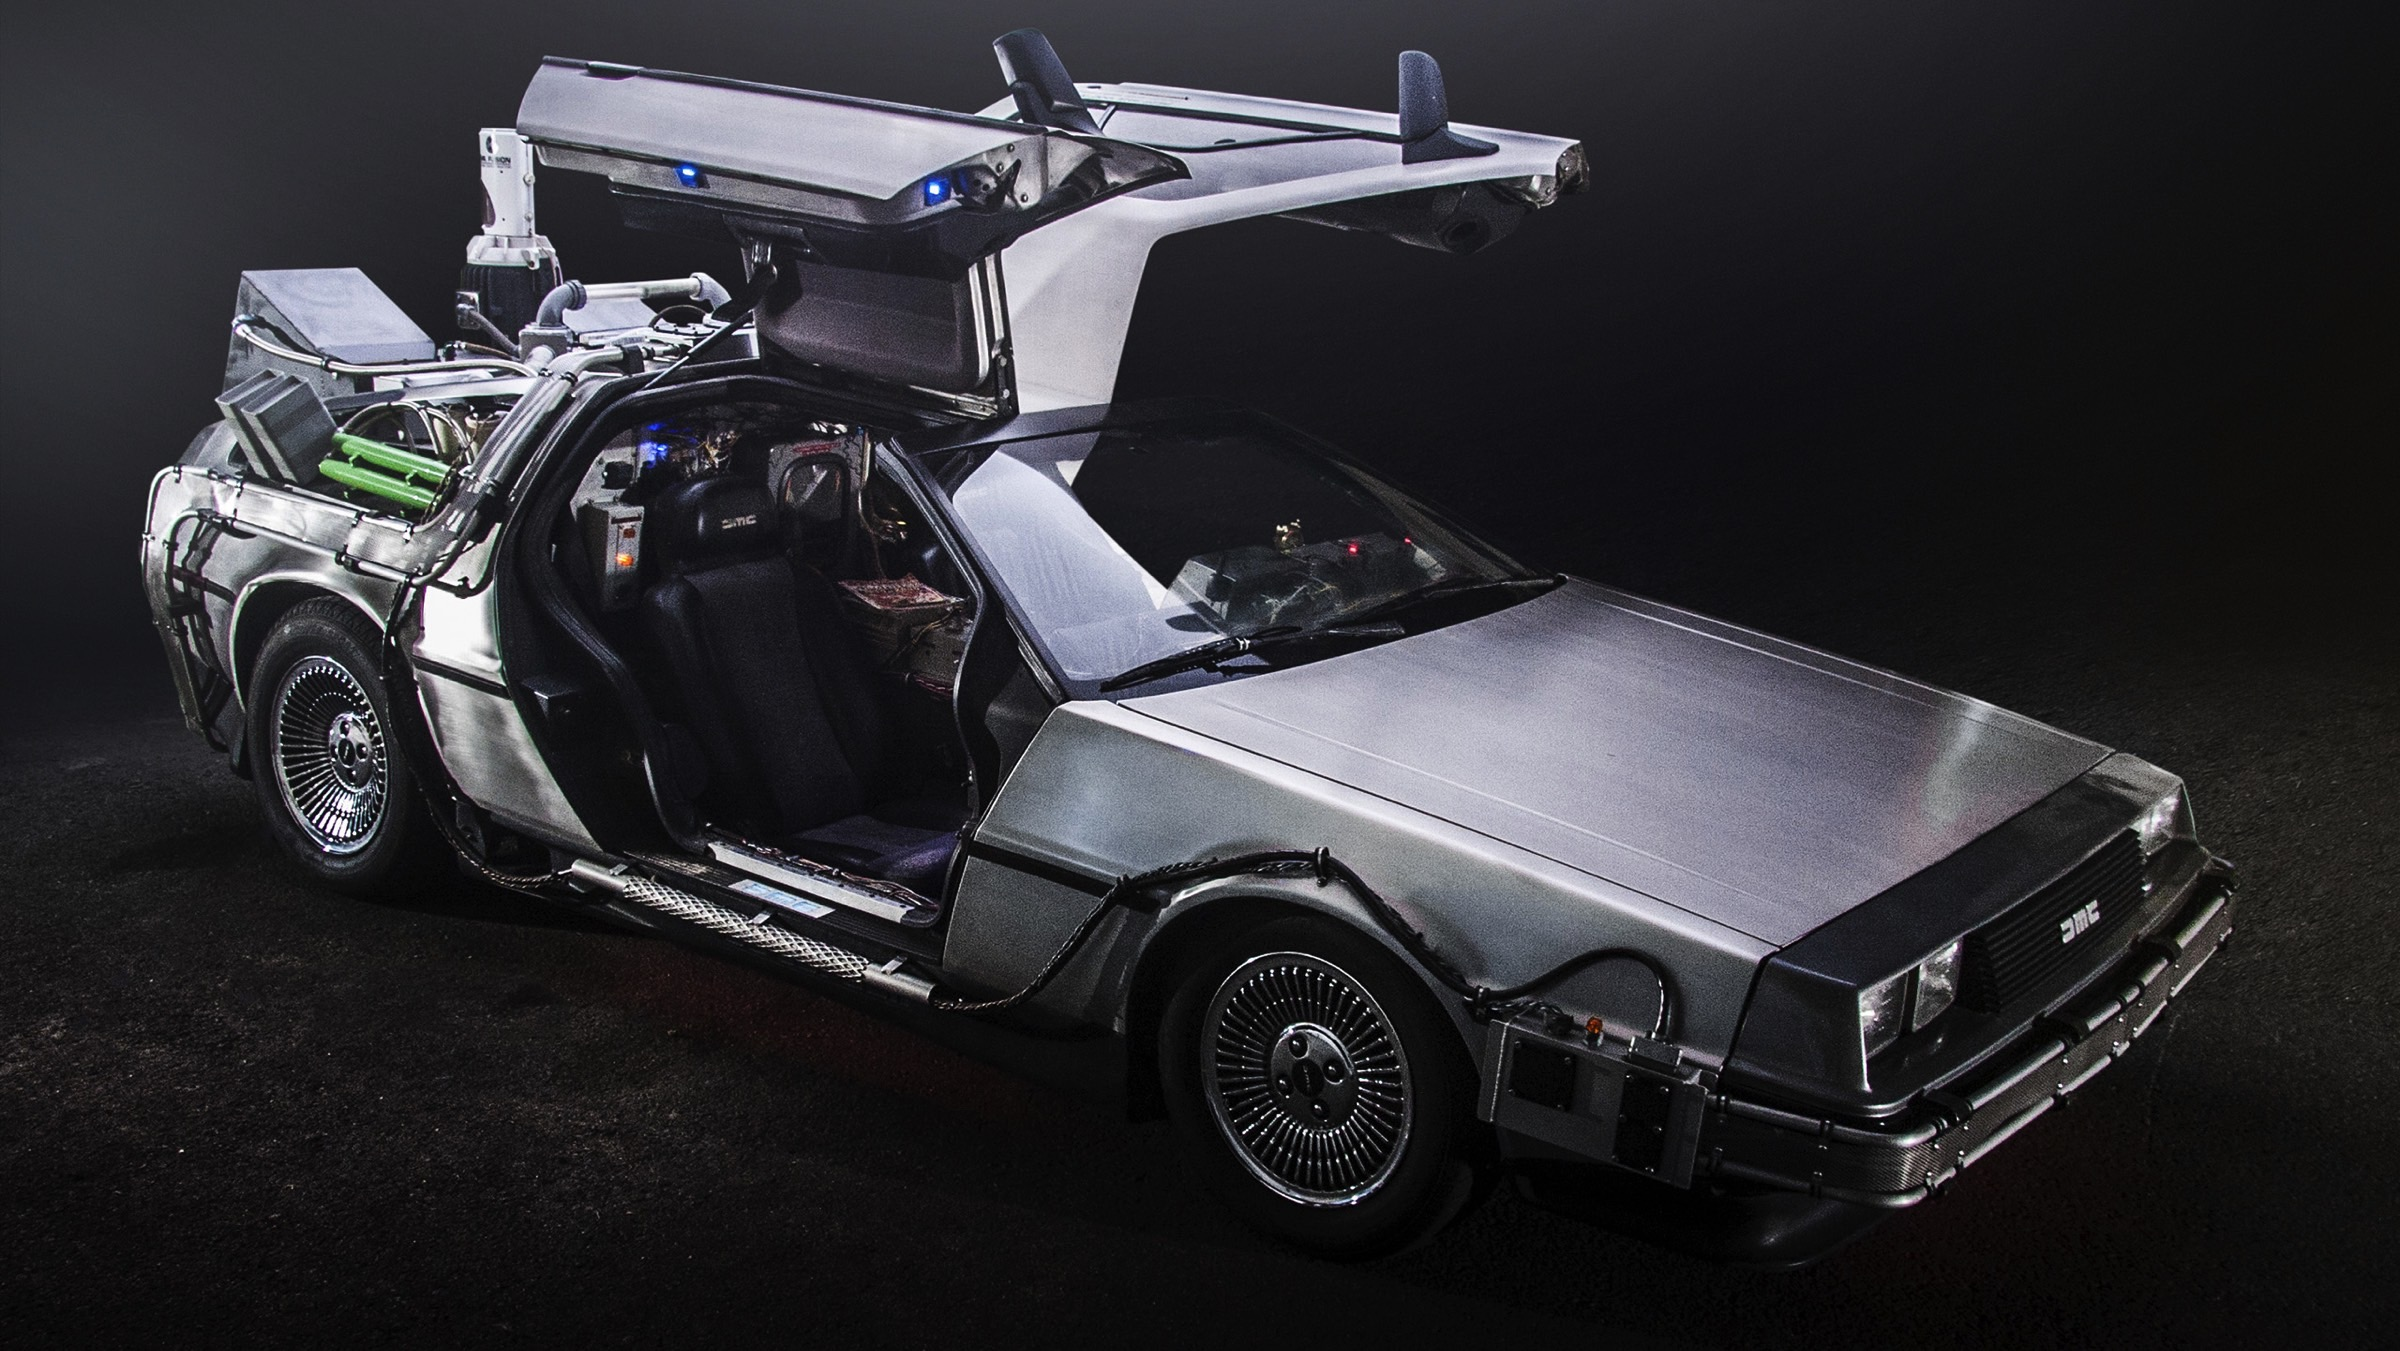 A Trash Fueled Delorean Just Like In Back To The Future Will Soon Cruise Through Tokyo